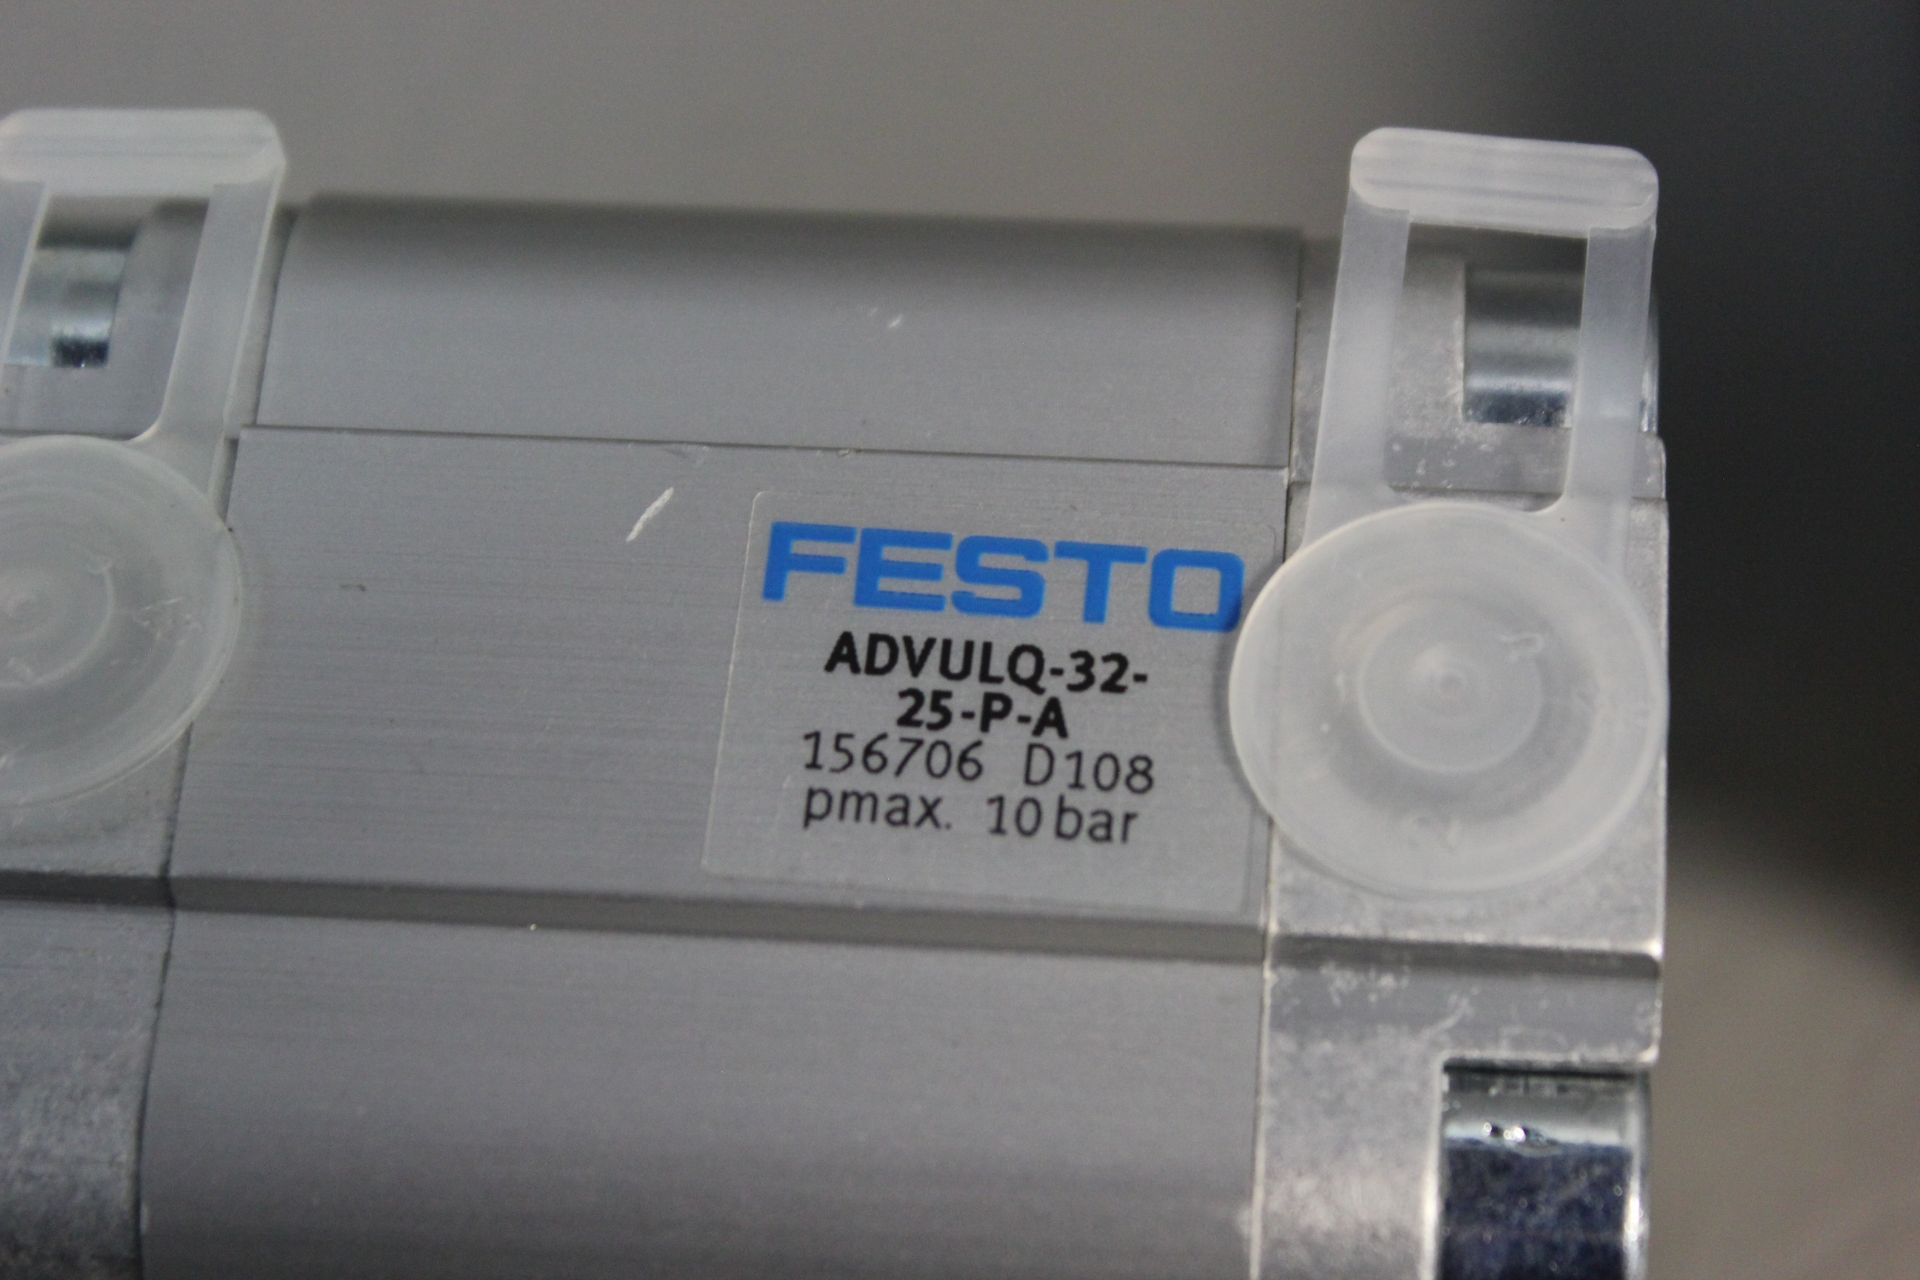 LOT OF 2 NEW FESTO PNEUMATIC CYLINDERS - Image 2 of 5